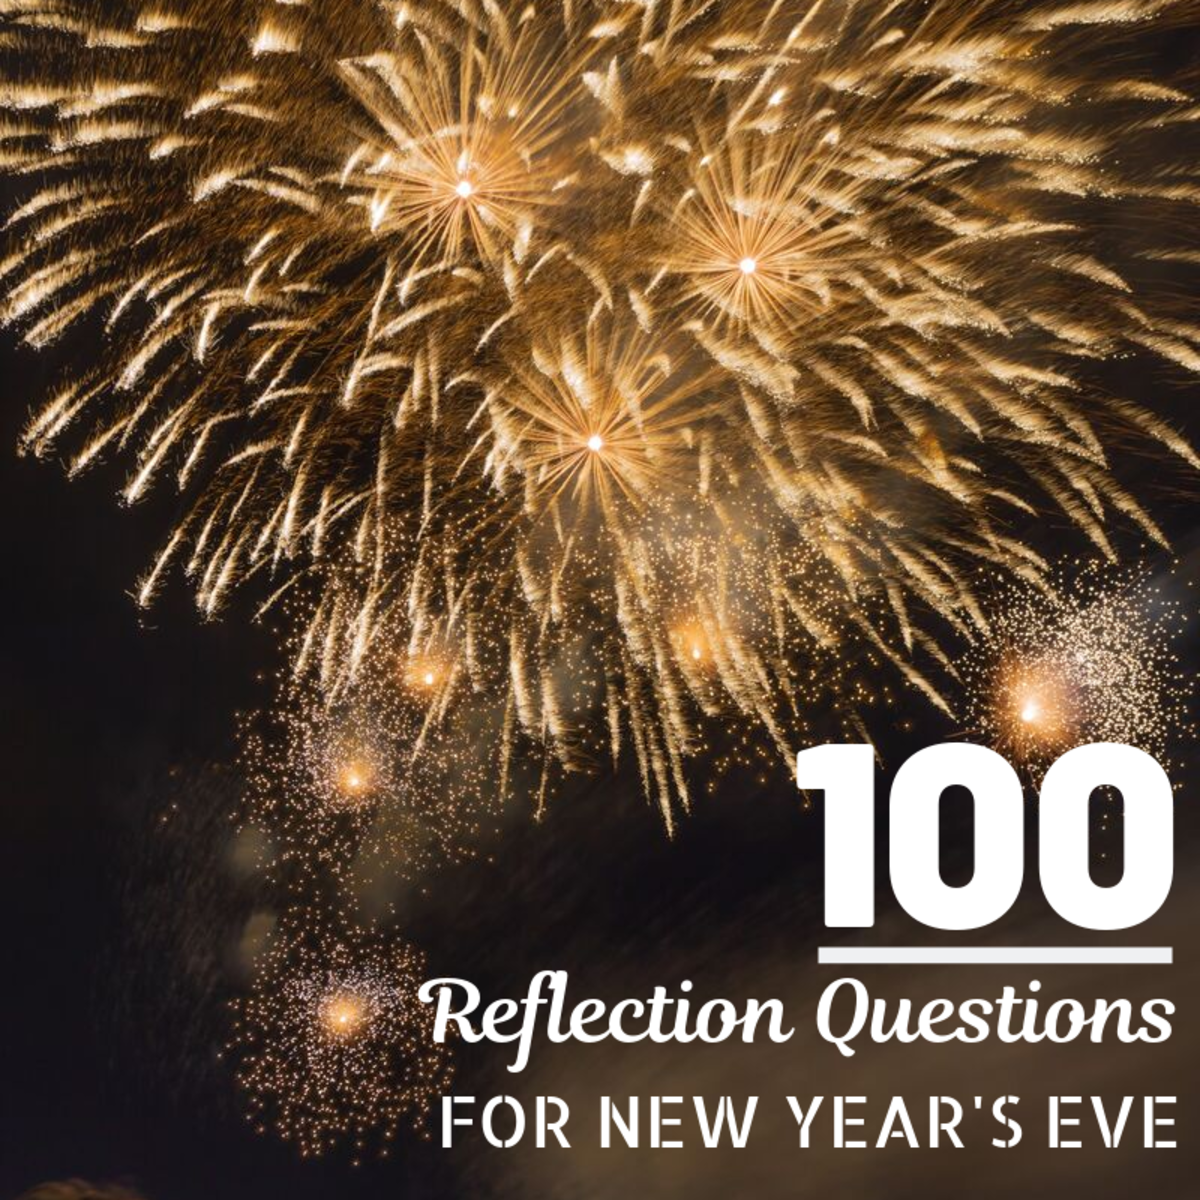 100 Reflection Questions to Help Guide Your New Year's Resolutions